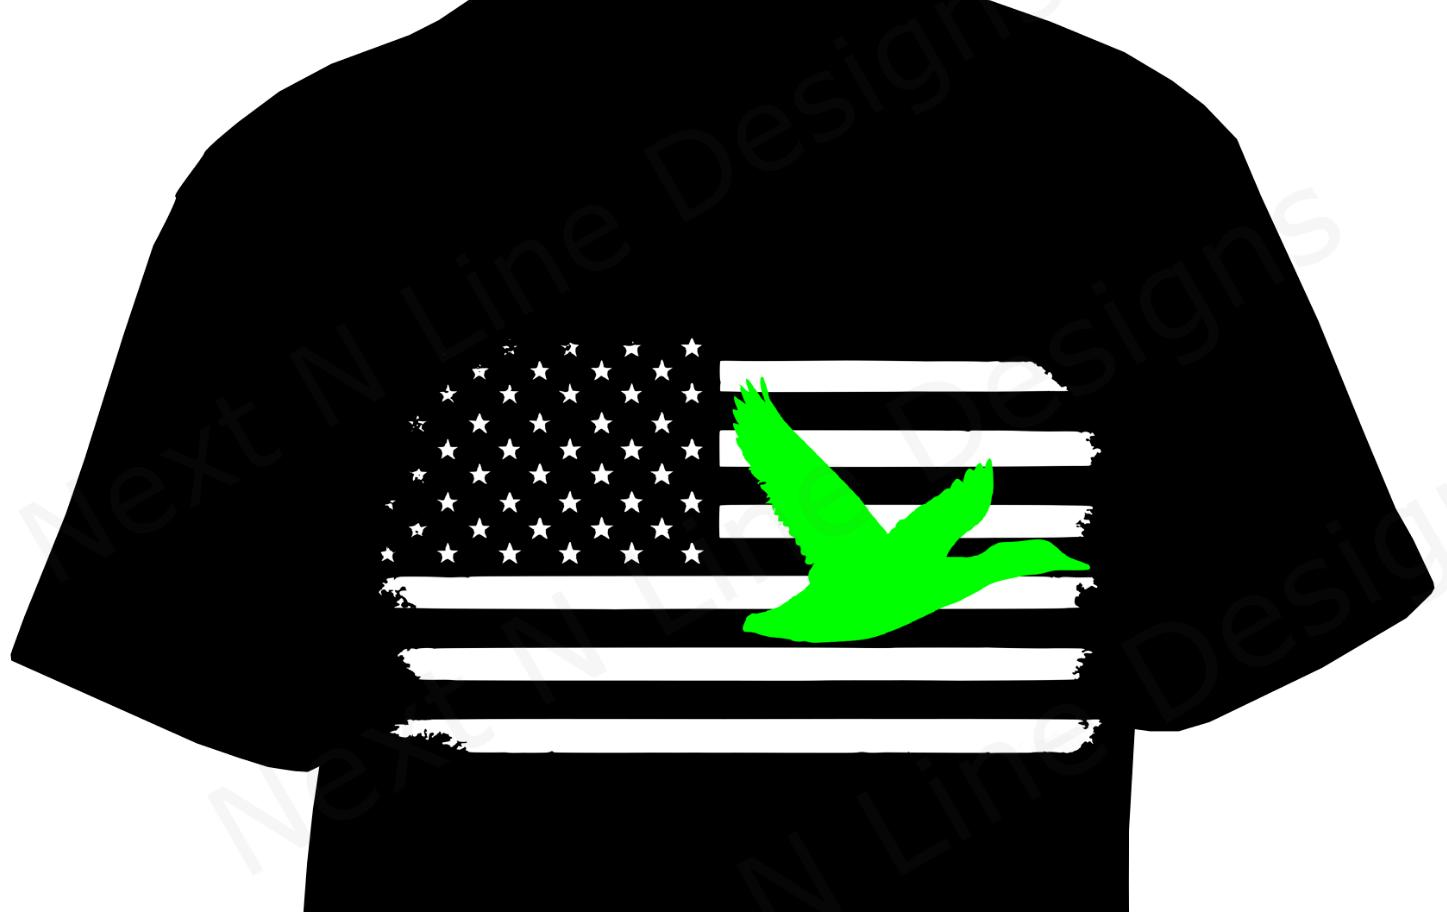 c9771ca03ddbc Duck Hunting, Waterfowl, Duck, Shotgun, American Flag, America, Clothing,T  Shirt Unisex Casual Tshirt Top Printed T Shirt Funny T Shirts For Guys From  ...